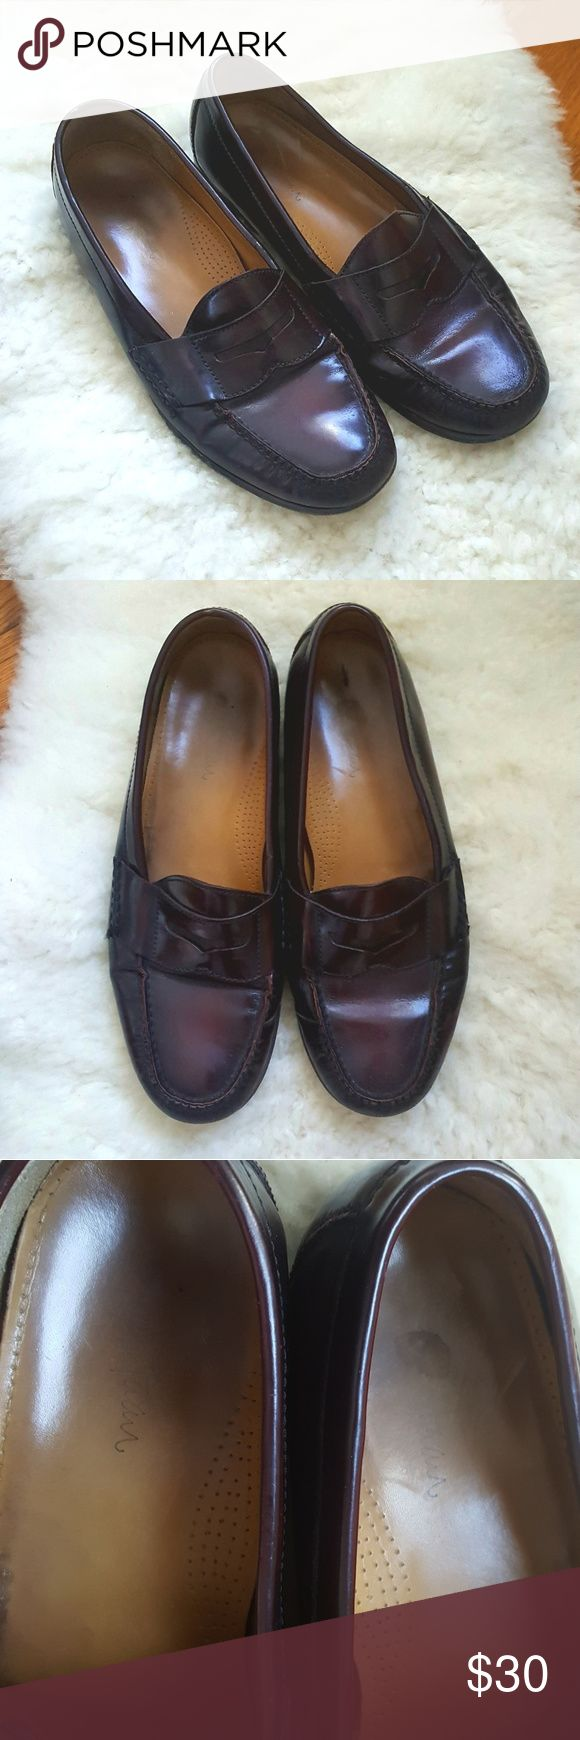 Men's Cole Haan penny loafers 11D, good condition Cole Haan loafers in decent condition- they've definitely been worn but they have more life in them. Minor scratches to leather on outside sides- represented in pictures but there may be a few more I missed. Inside shows wear as shown. Non-smoking home. Cole Haan Shoes Loafers & Slip-Ons